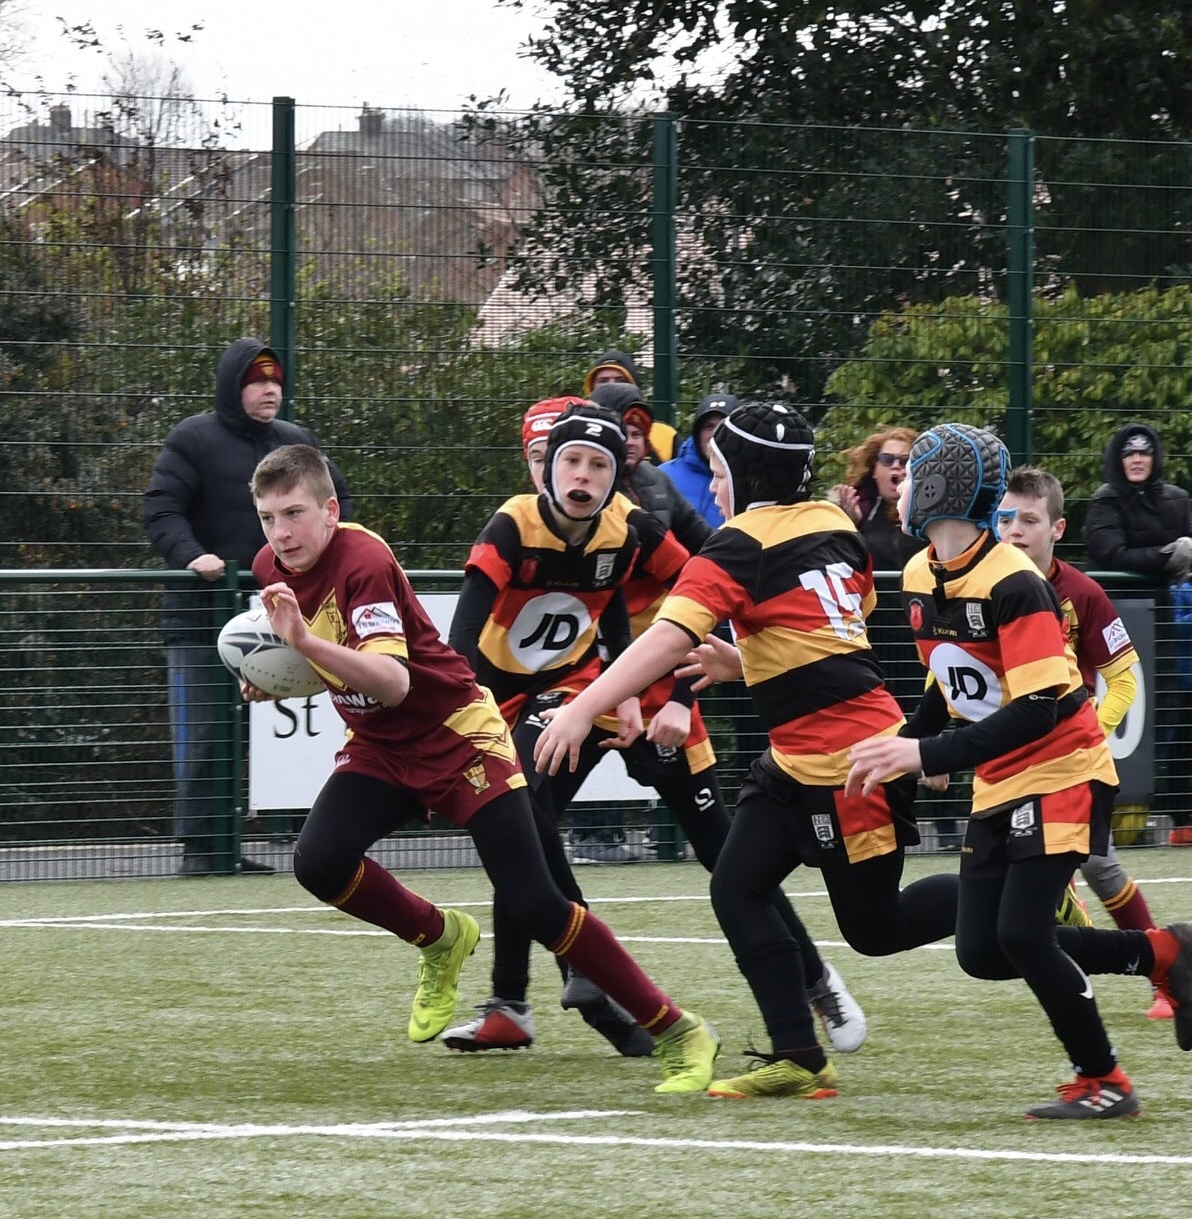 Match Reports - 17th March 2019